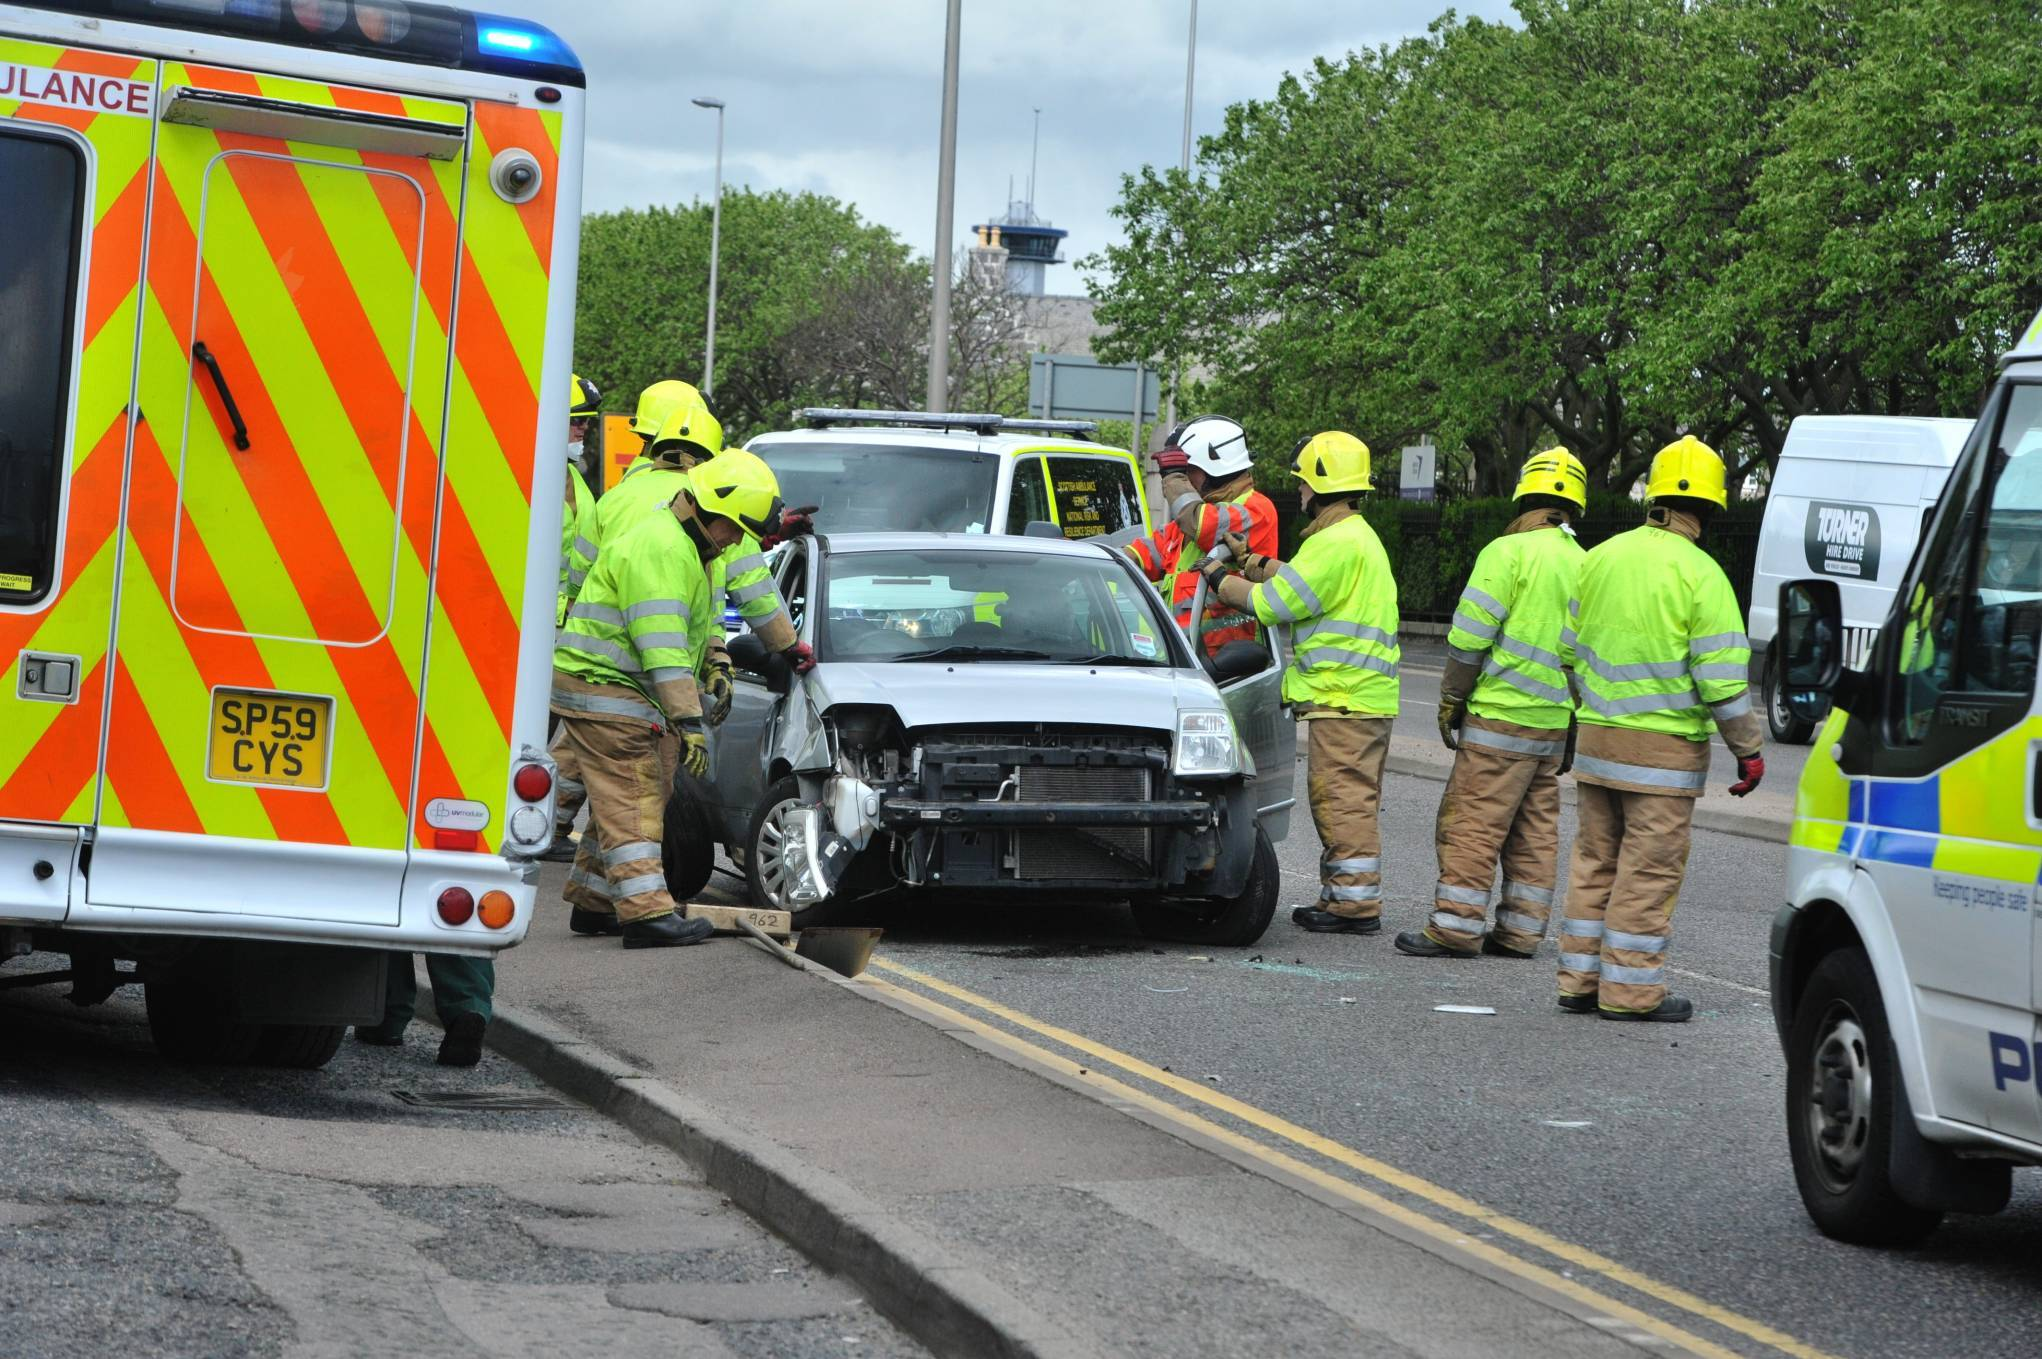 Emergency crews at the scene of this afternoon's crash on the Ellon Road.